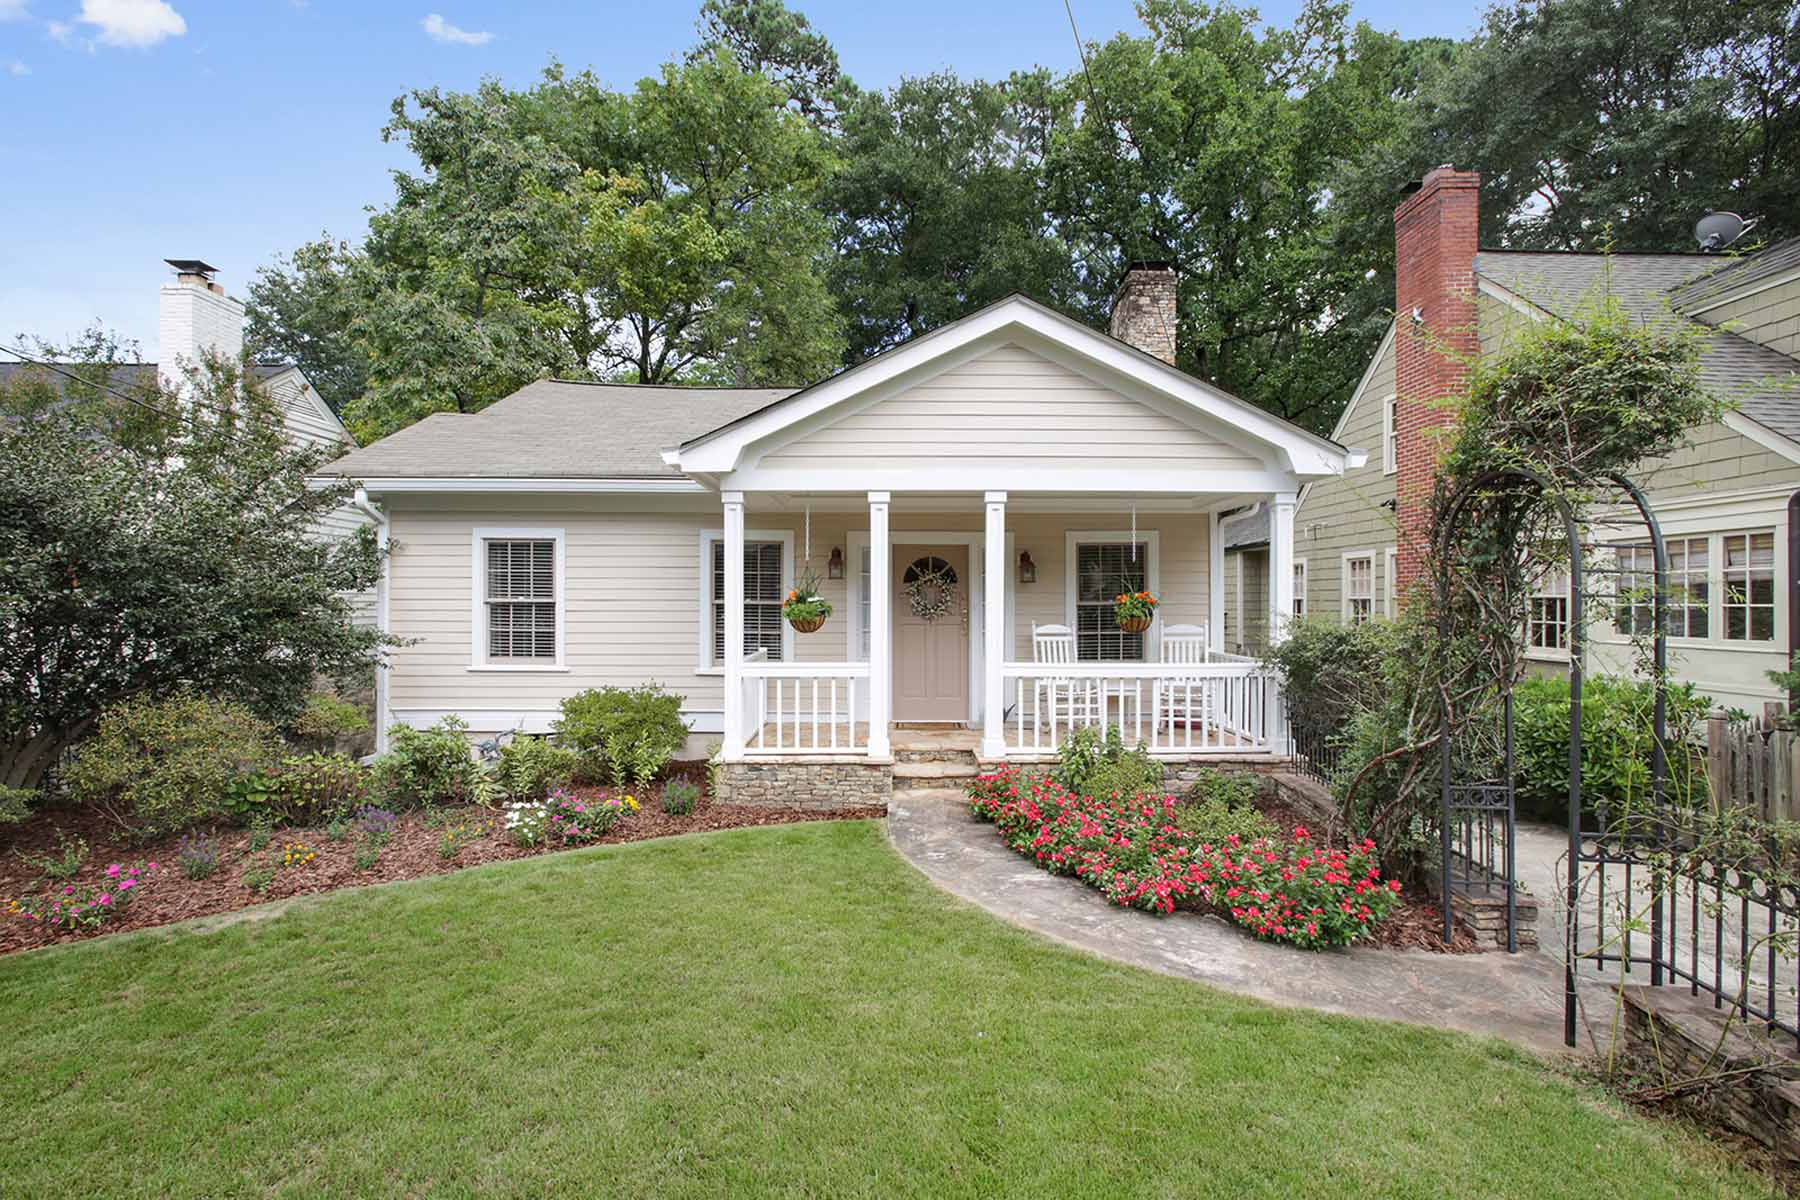 Single Family Home for Sale at Charming Buckhead Bungalow With Finished Terrace Level 2279 Fairhaven Circle NE Peachtree Hills, Atlanta, Georgia, 30305 United States